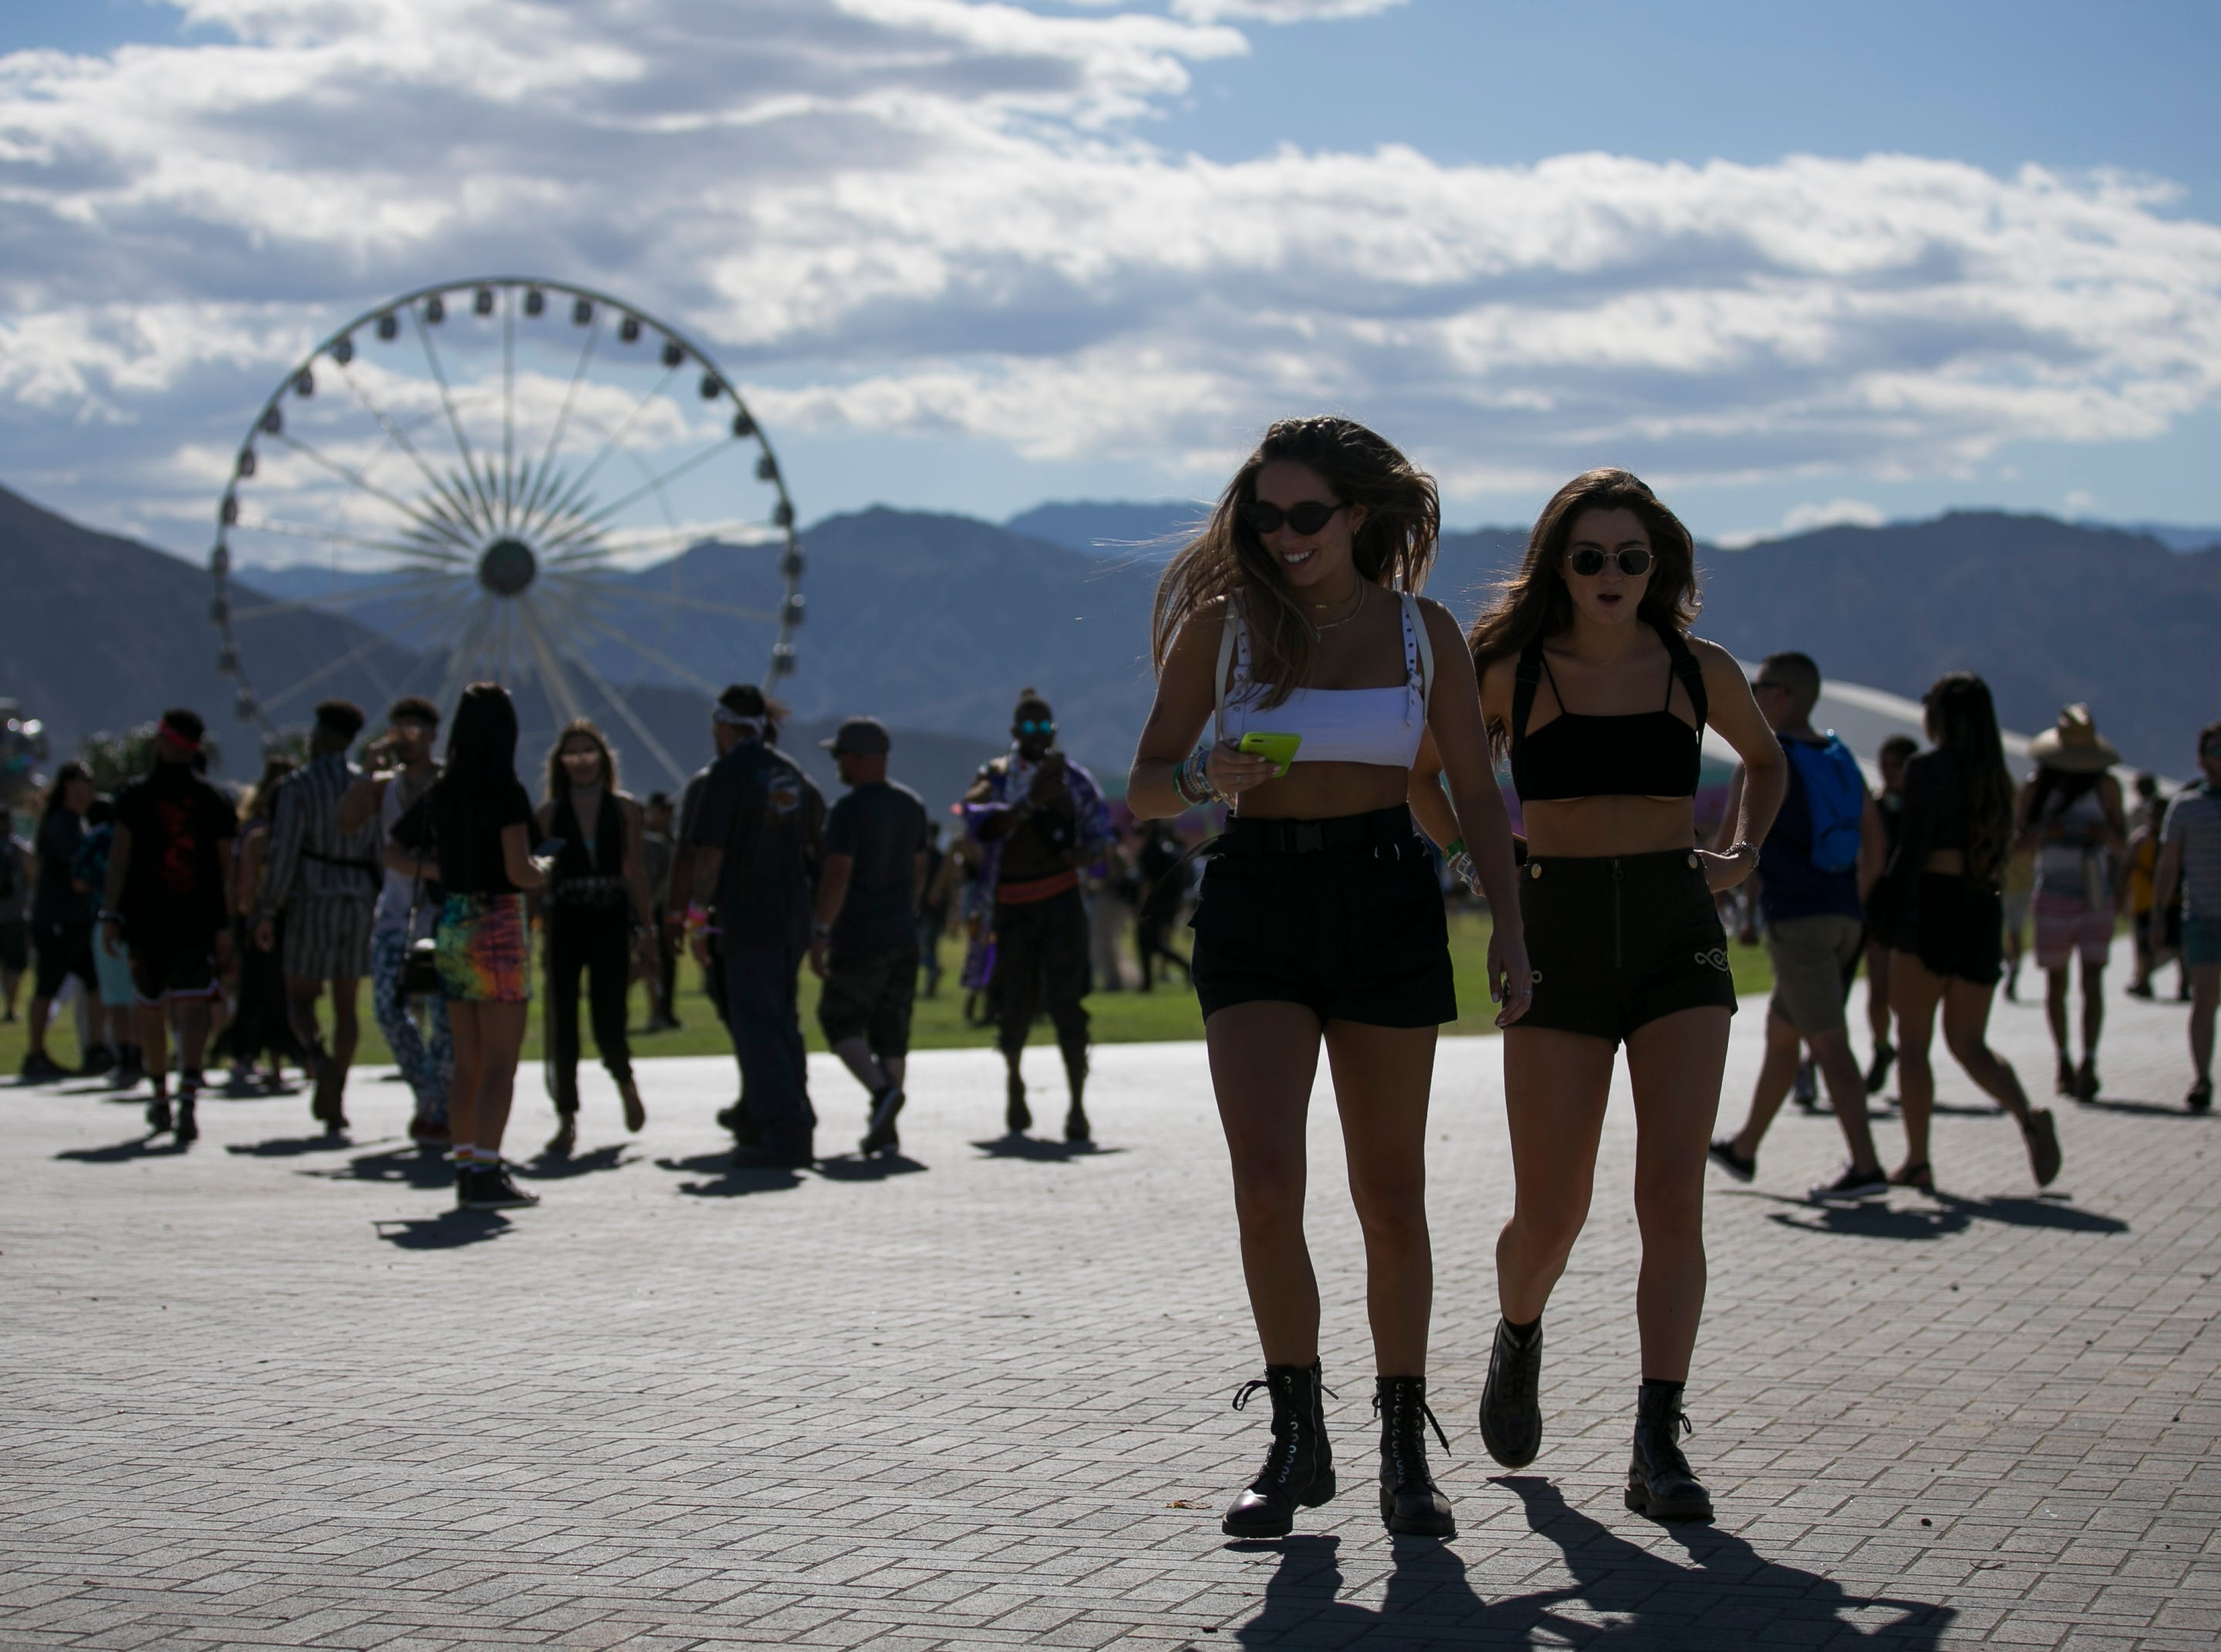 Shelby Silva (right) and Anna Arnett (left) walk through the grounds at the Coachella Valley Music and Arts Festival in Indio, Calif. on Fri. April 12, 2019.